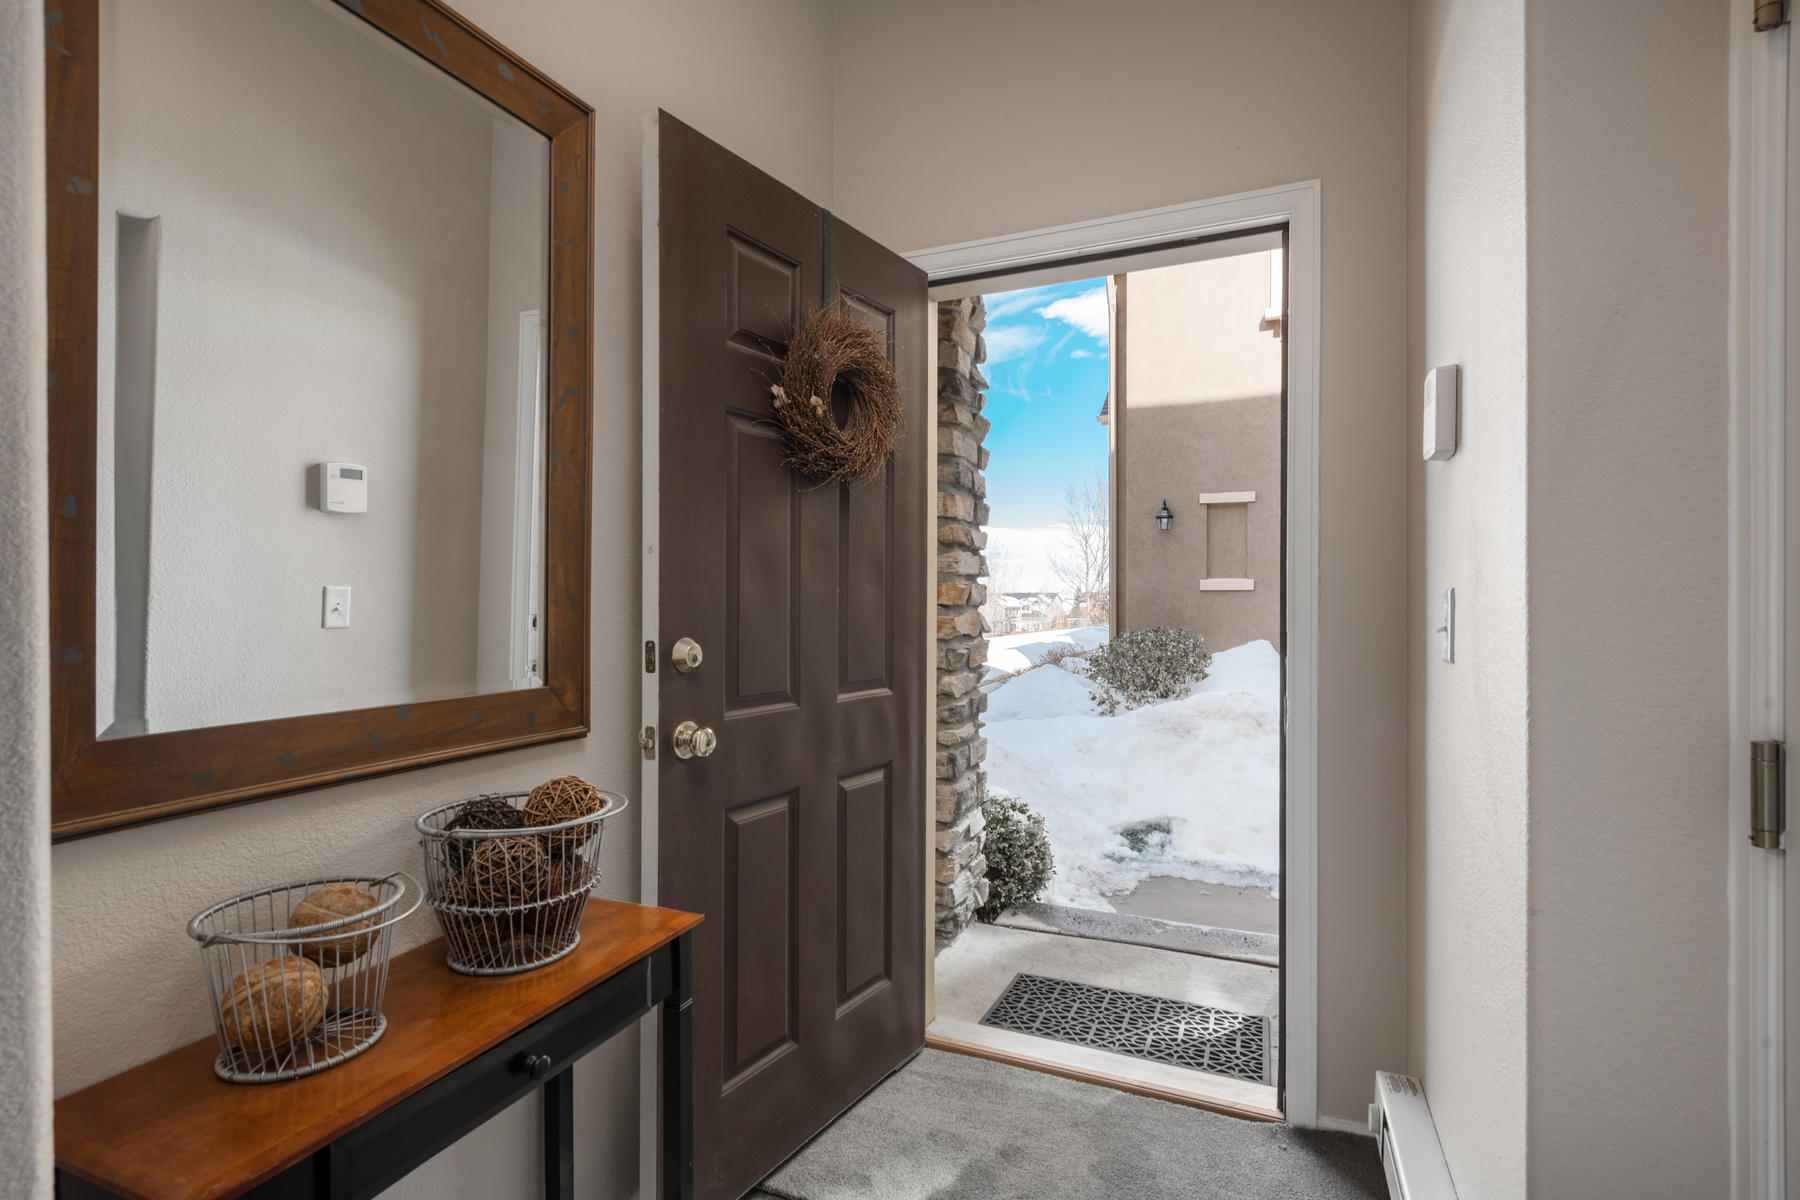 Condominiums のために 売買 アット Love at first sight! Perfectly updated & meticulously maintained 10521 Ashfield Street Unit #4B Highlands Ranch, コロラド 80126 アメリカ